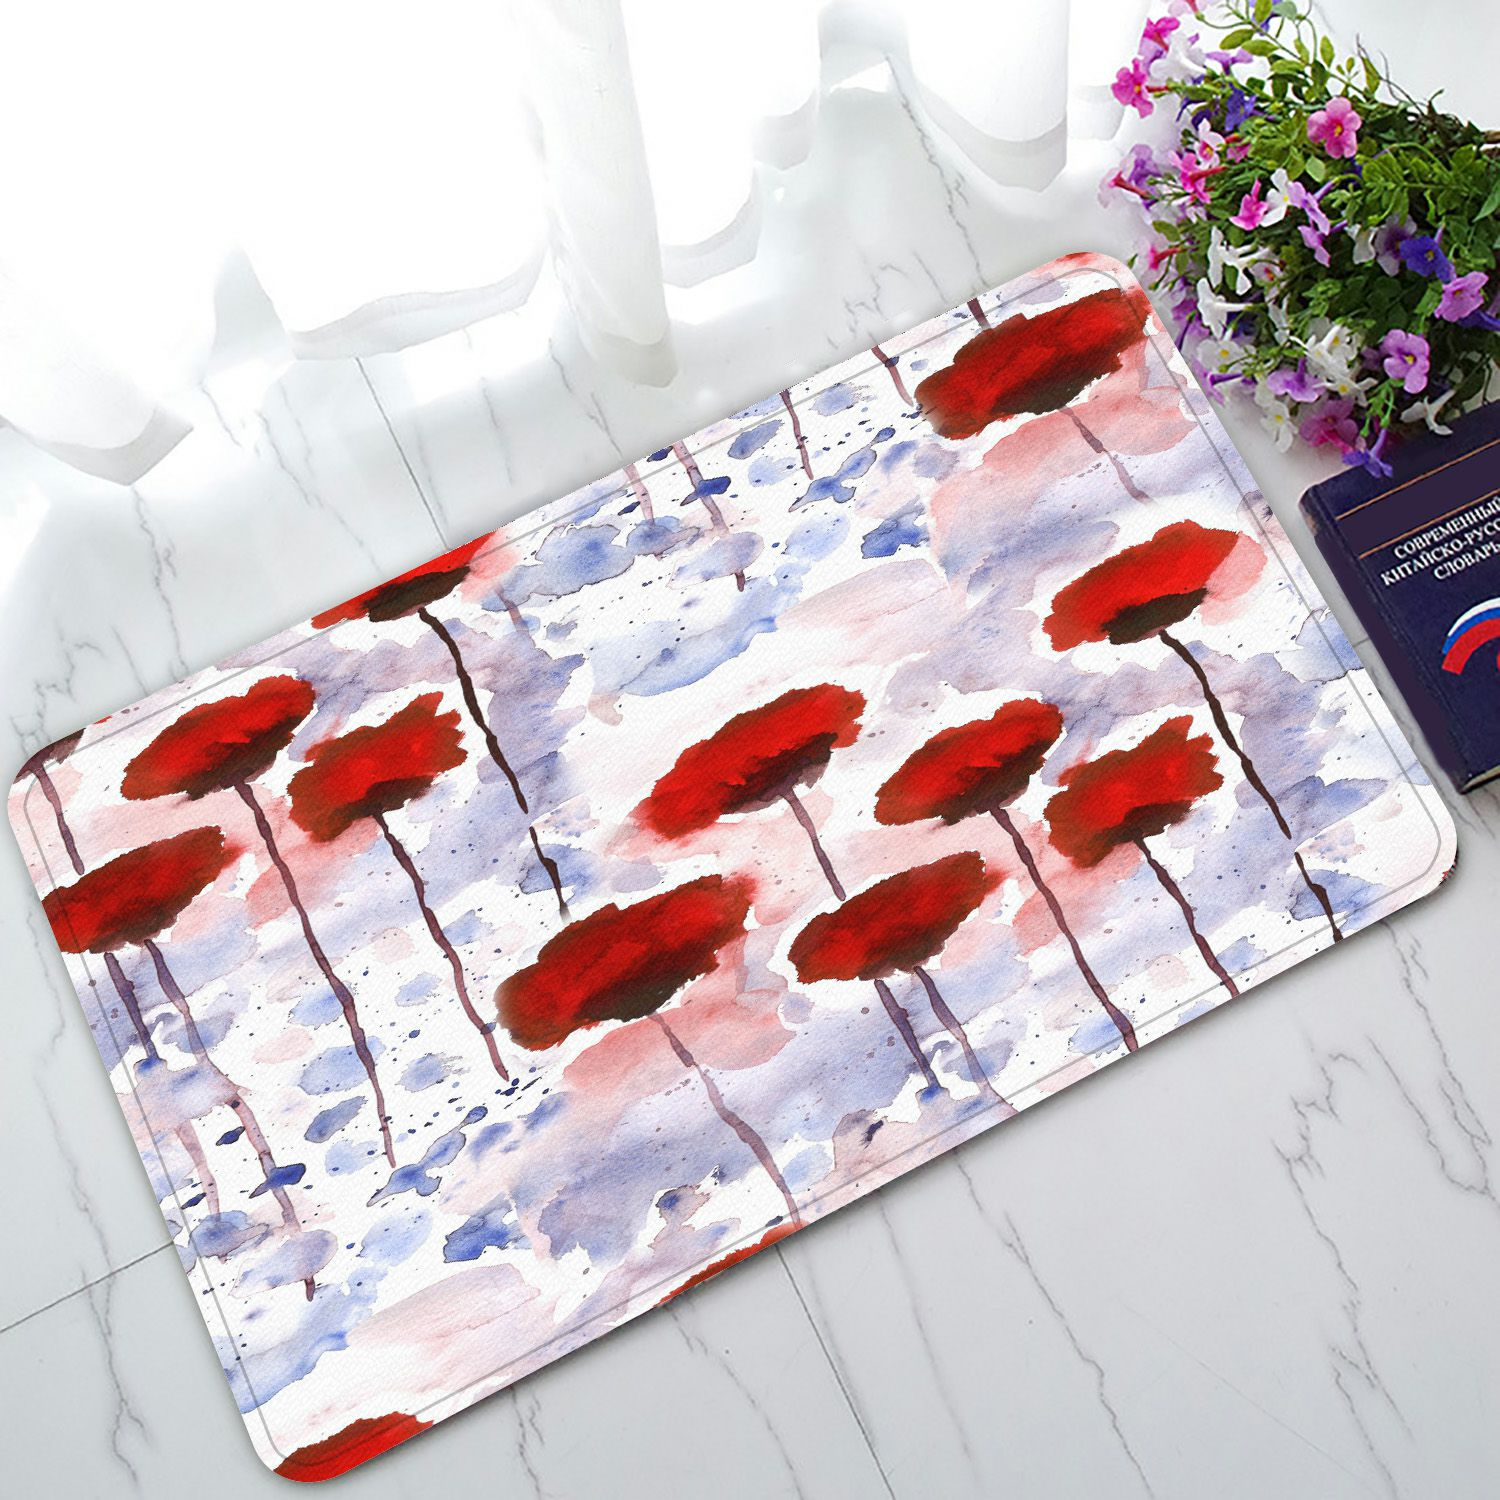 PHFZK Flower Doormat, Watercolor Floral Poppies in the Spring Season Painting Red Doormat Outdoors/Indoor Doormat Home Floor Mats Rugs Size 30x18 inches